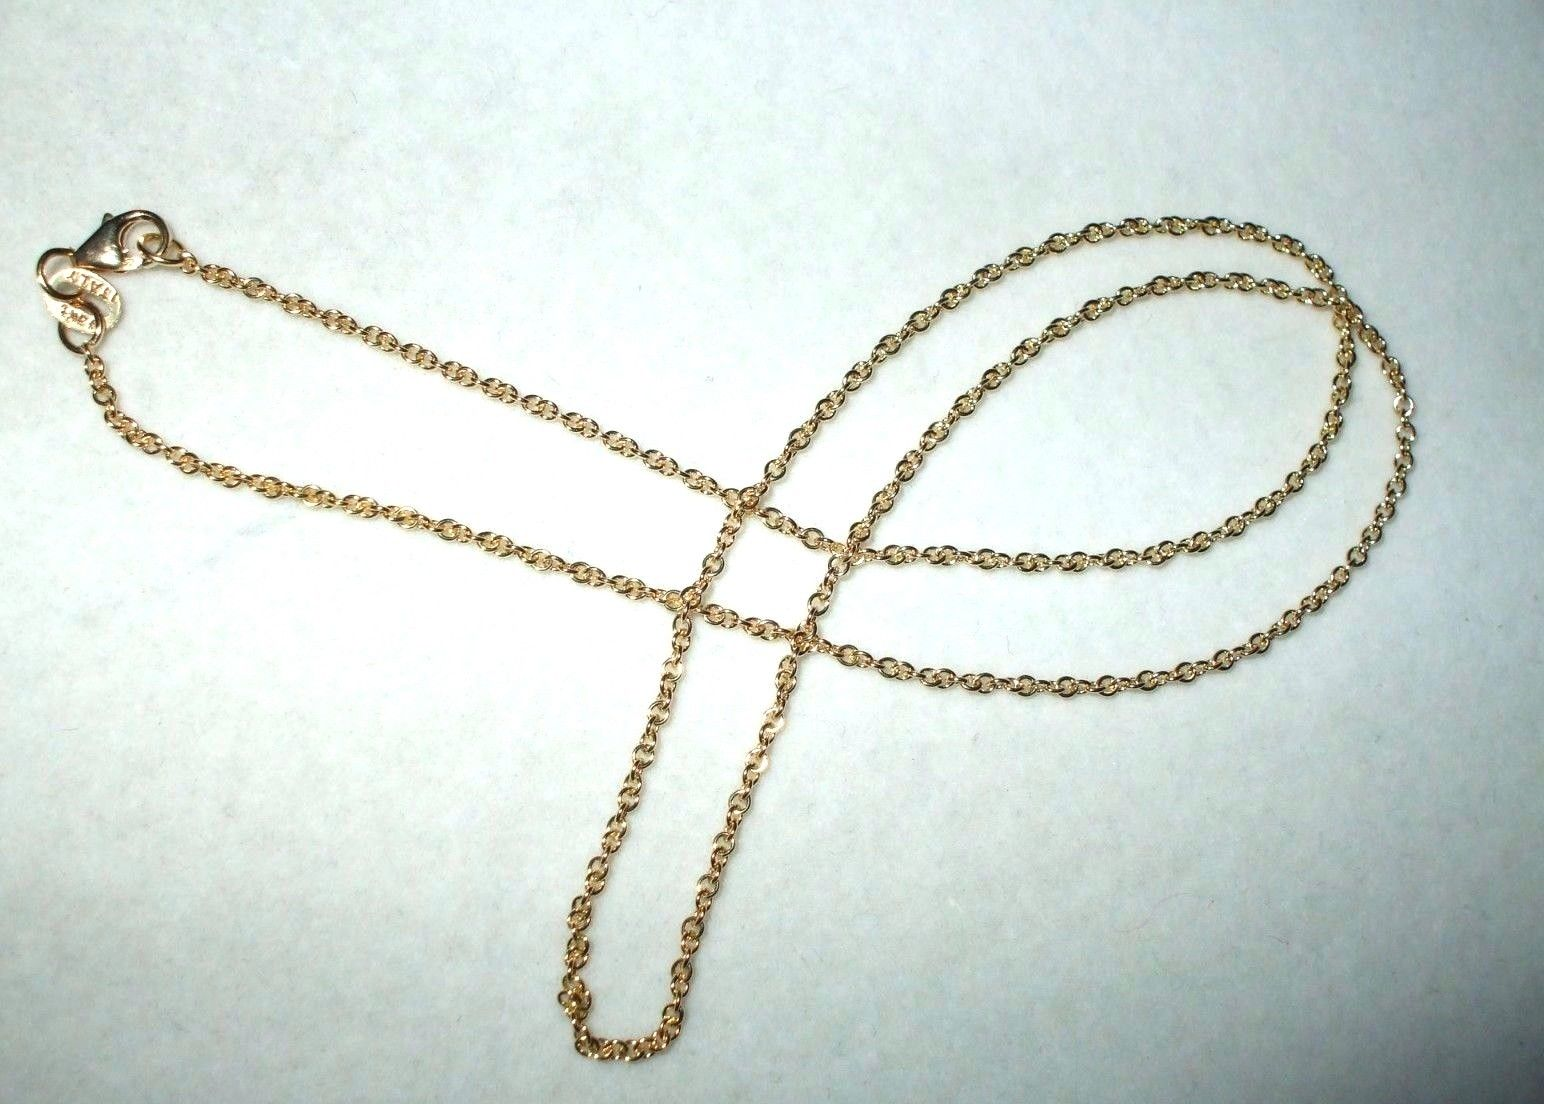 18 inch 14K yellow gold cable chain with lobster clasp 2.6 grams $350